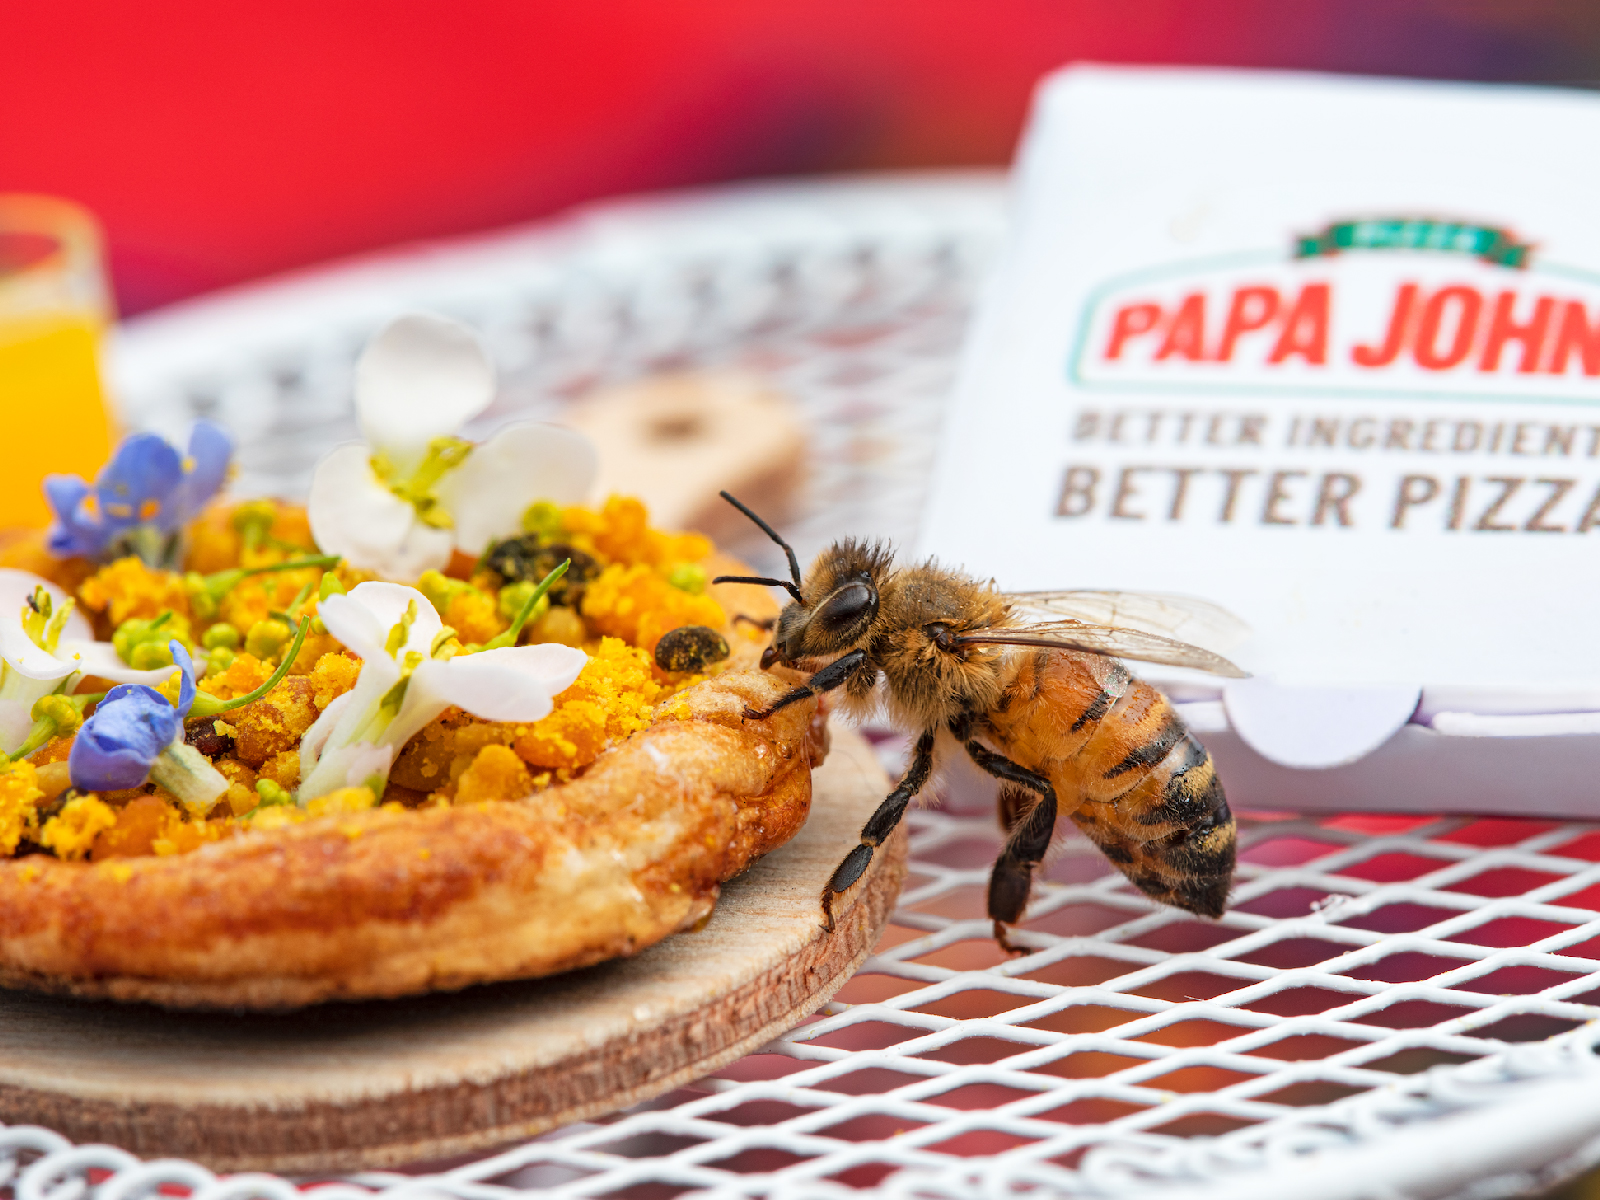 papa-johns-beezza-FT-BLOG0719.jpg